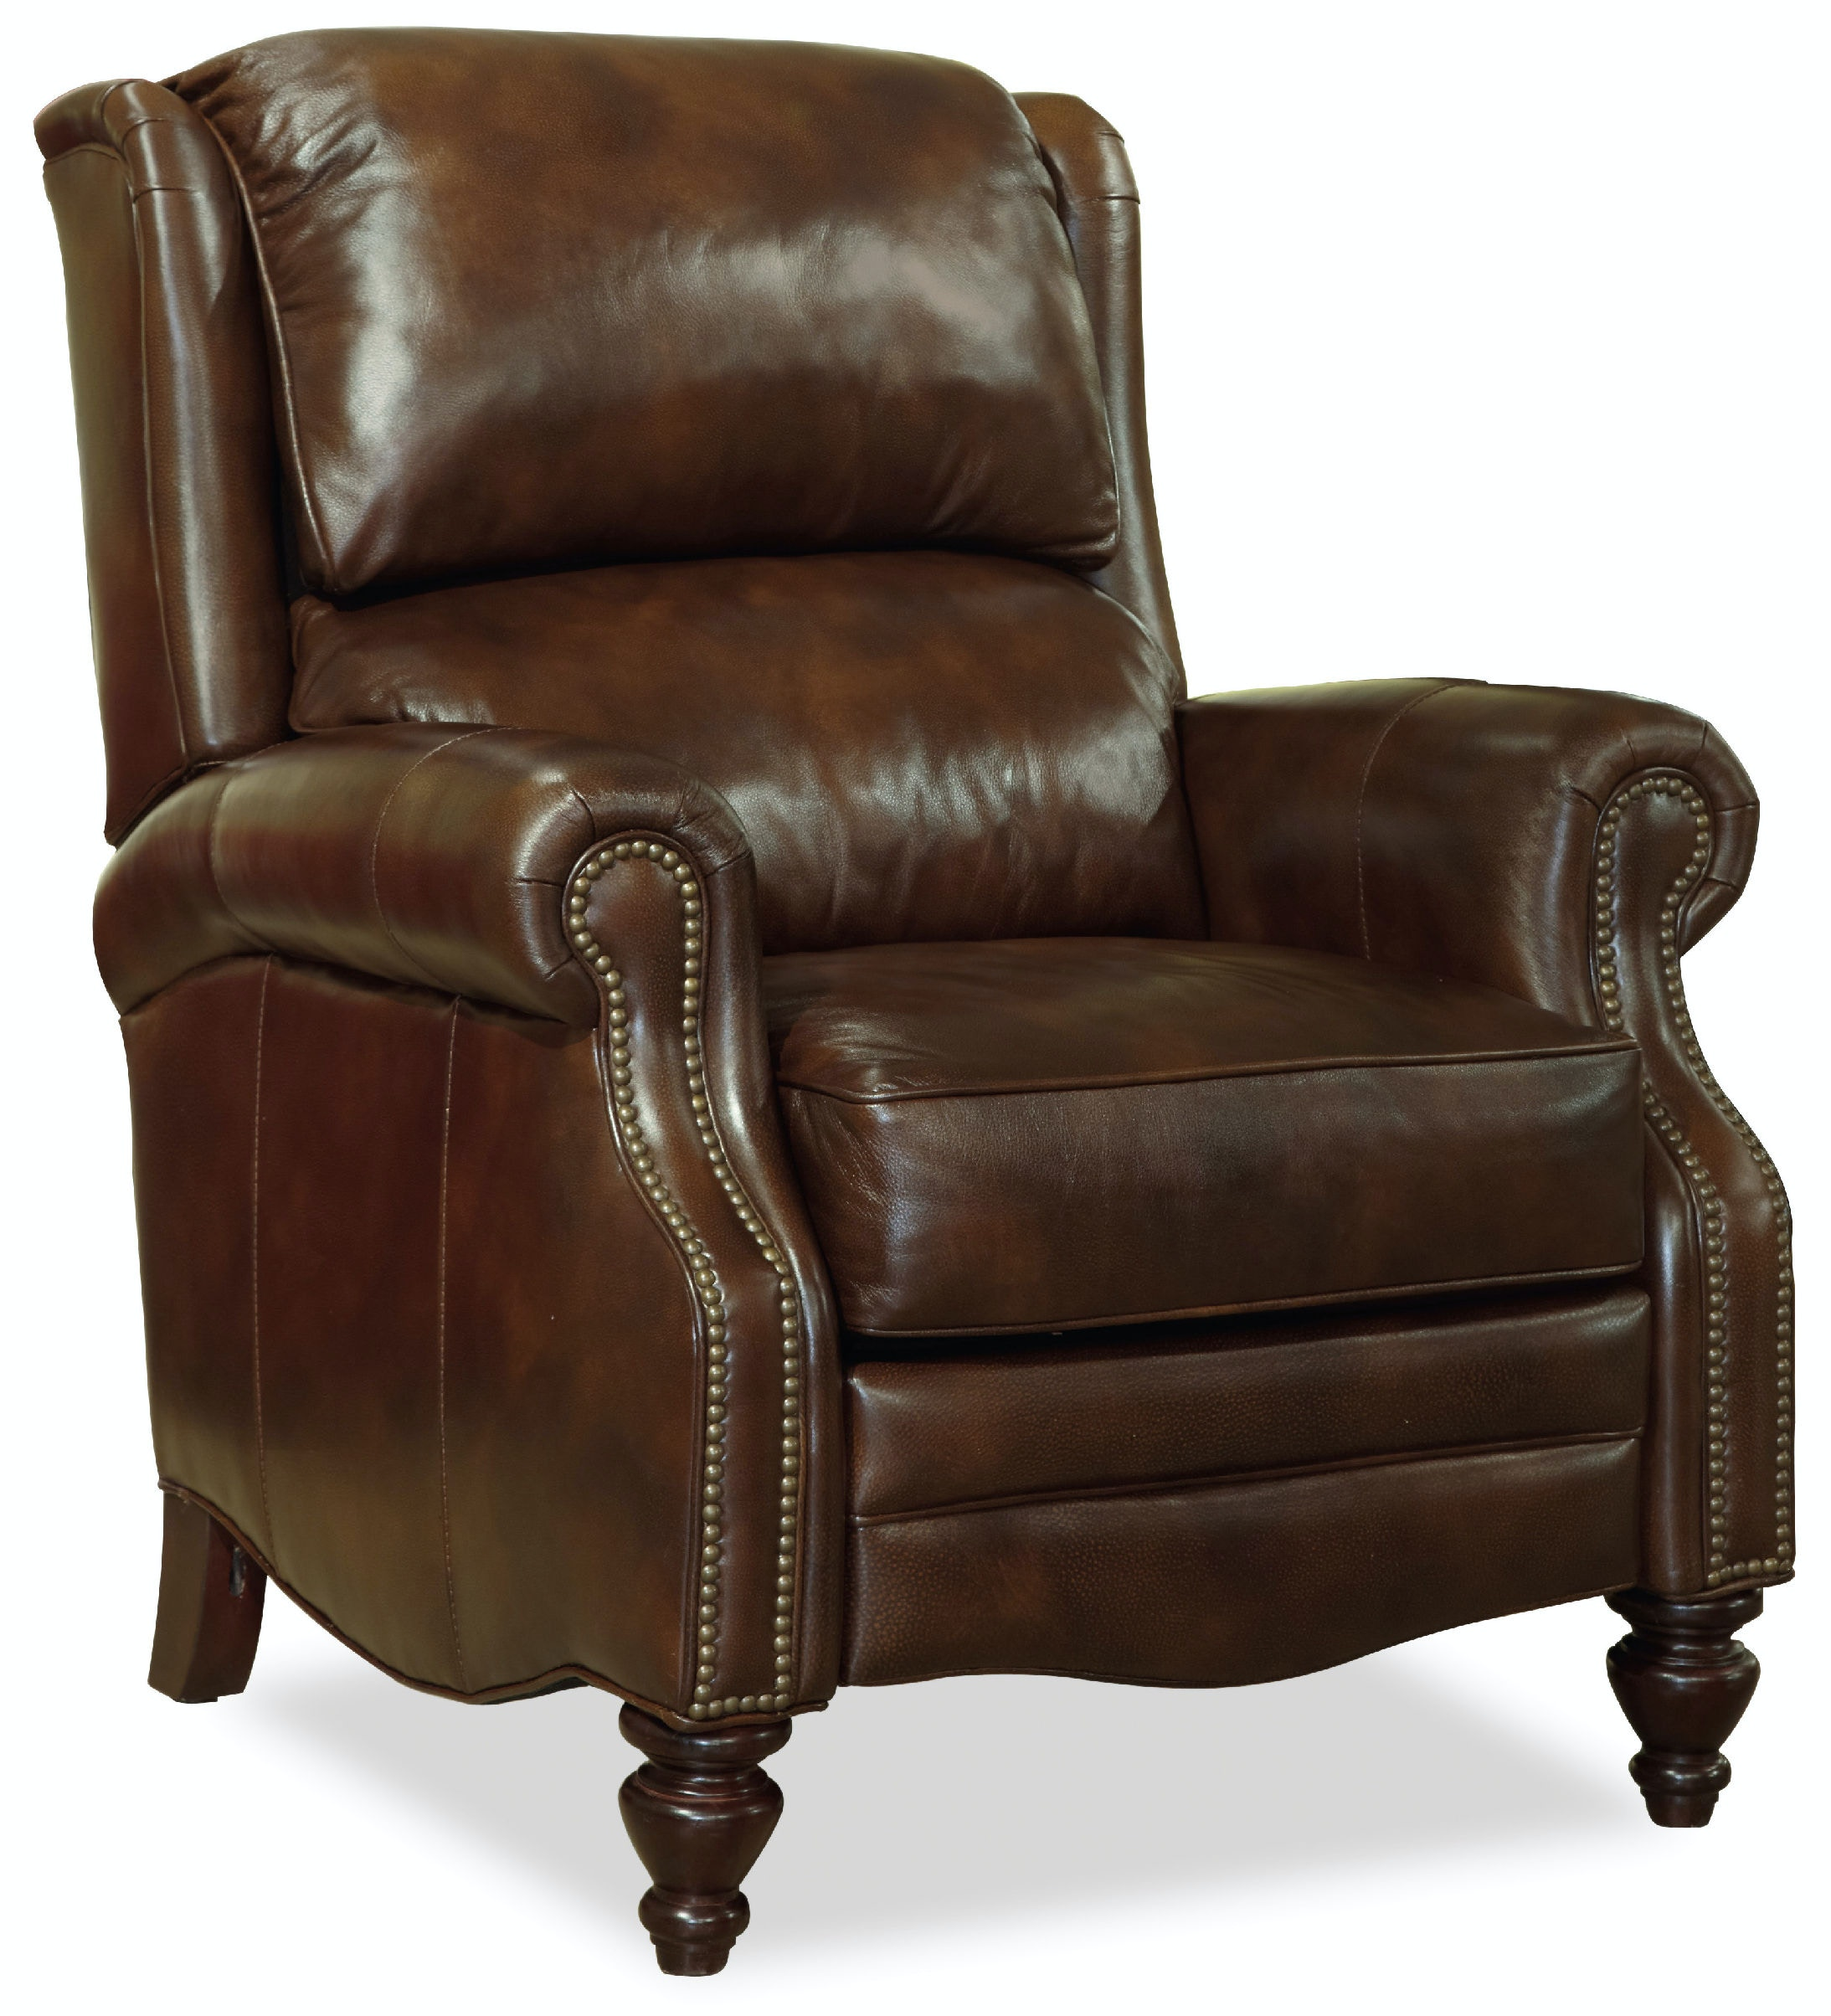 executive chair manufacturers covers and tablecloths rentals hooker furniture clark recliner rc168-089